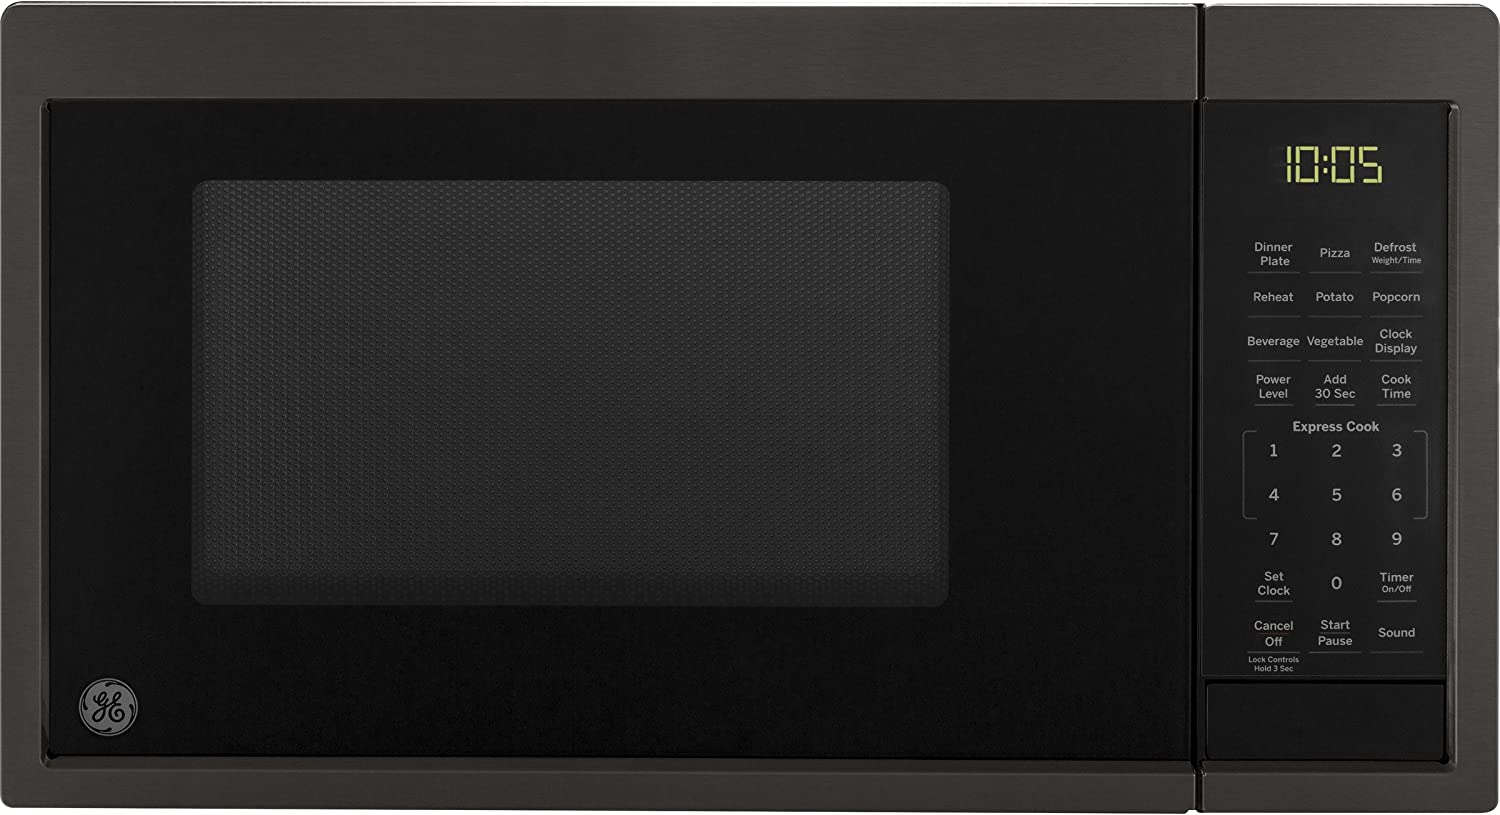 Amazon Com Ge Appliances Jes1095bmts Ge 0 9 Cu Ft Capacity Countertop Microwave Oven Black Stainless Steel Appliances